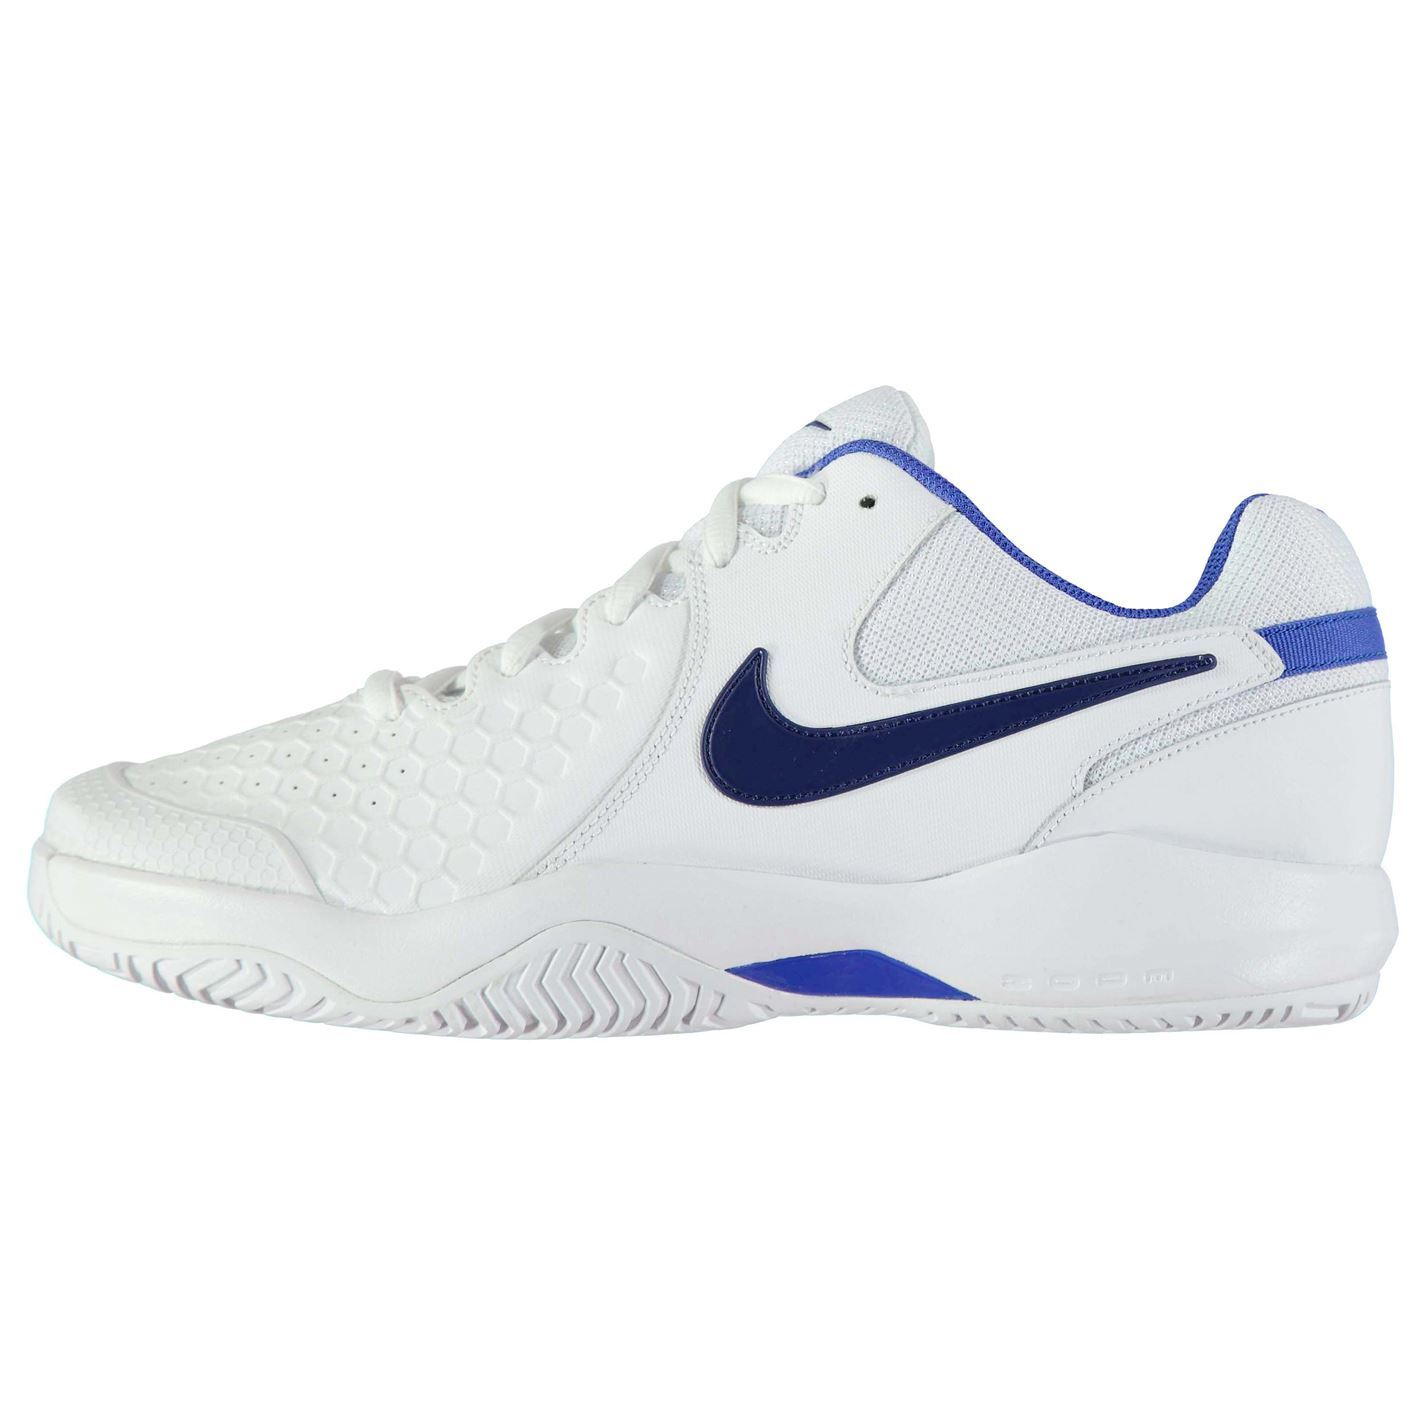 fde479ee4a0 Nike Air Zoom Resistance Tennis Shoes Mens Sports Footwear Trainers ...